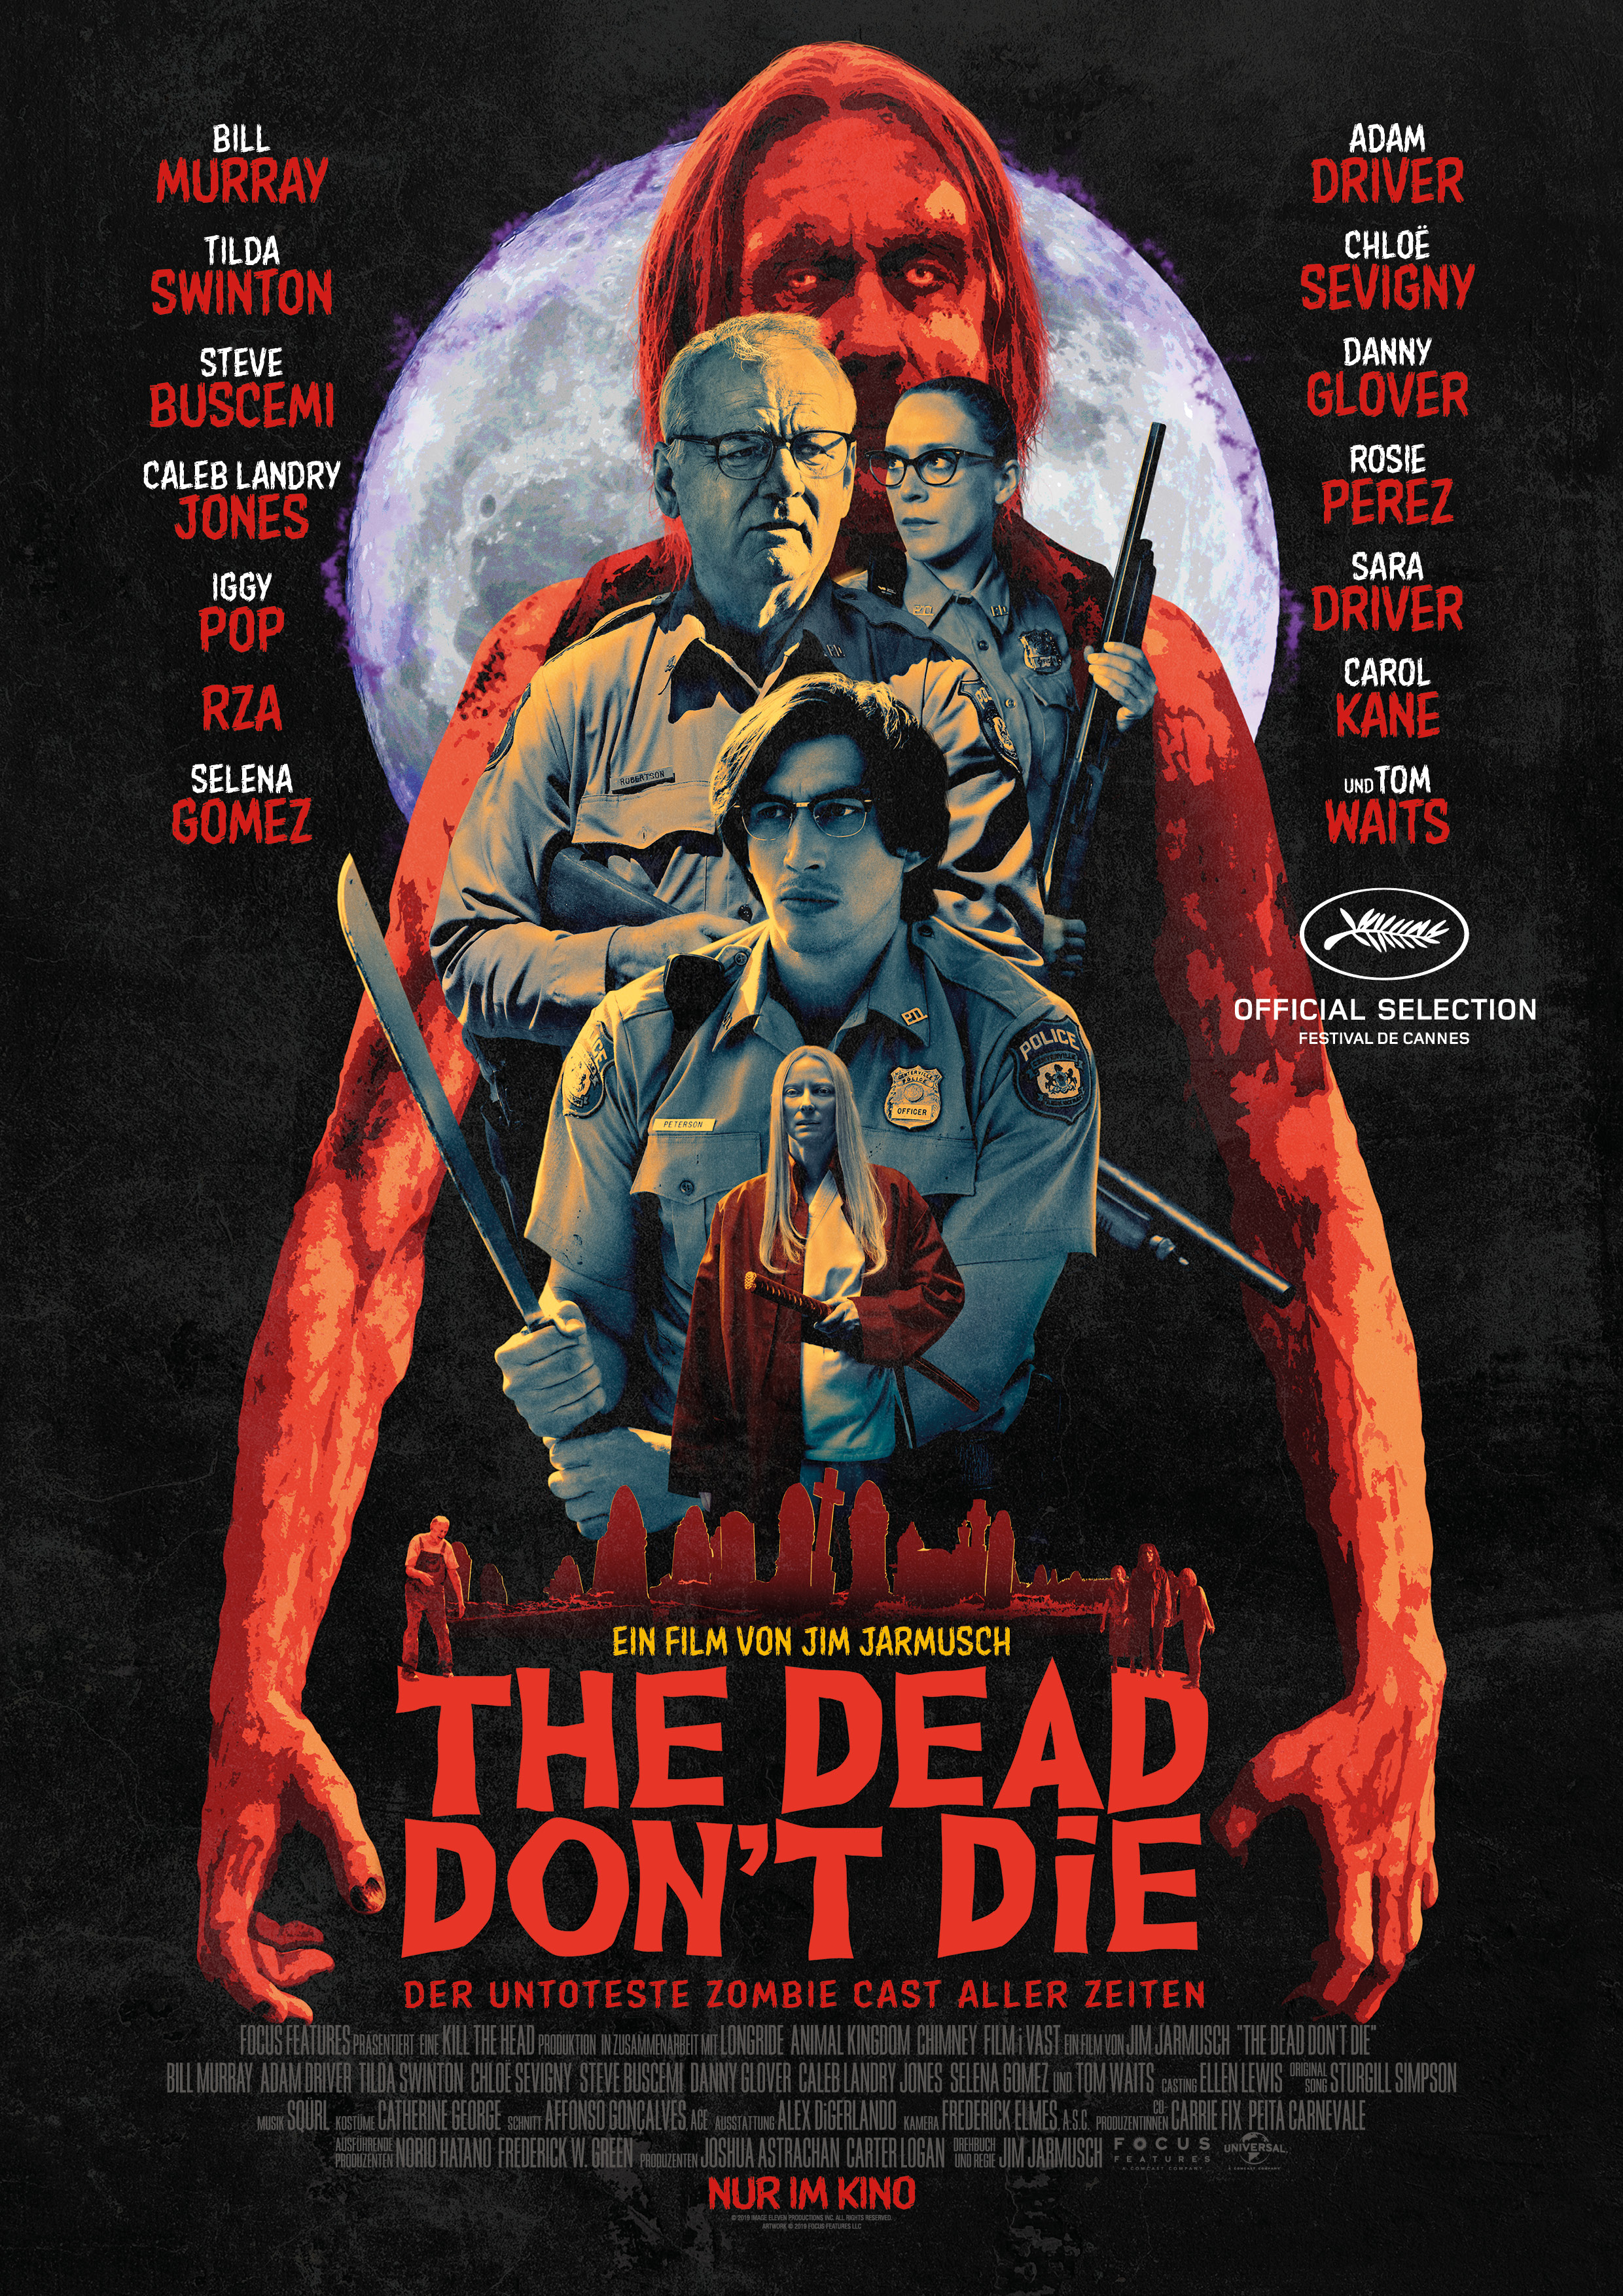 The Dead Don T Die Film 2019 Trailer Kritik Kino De